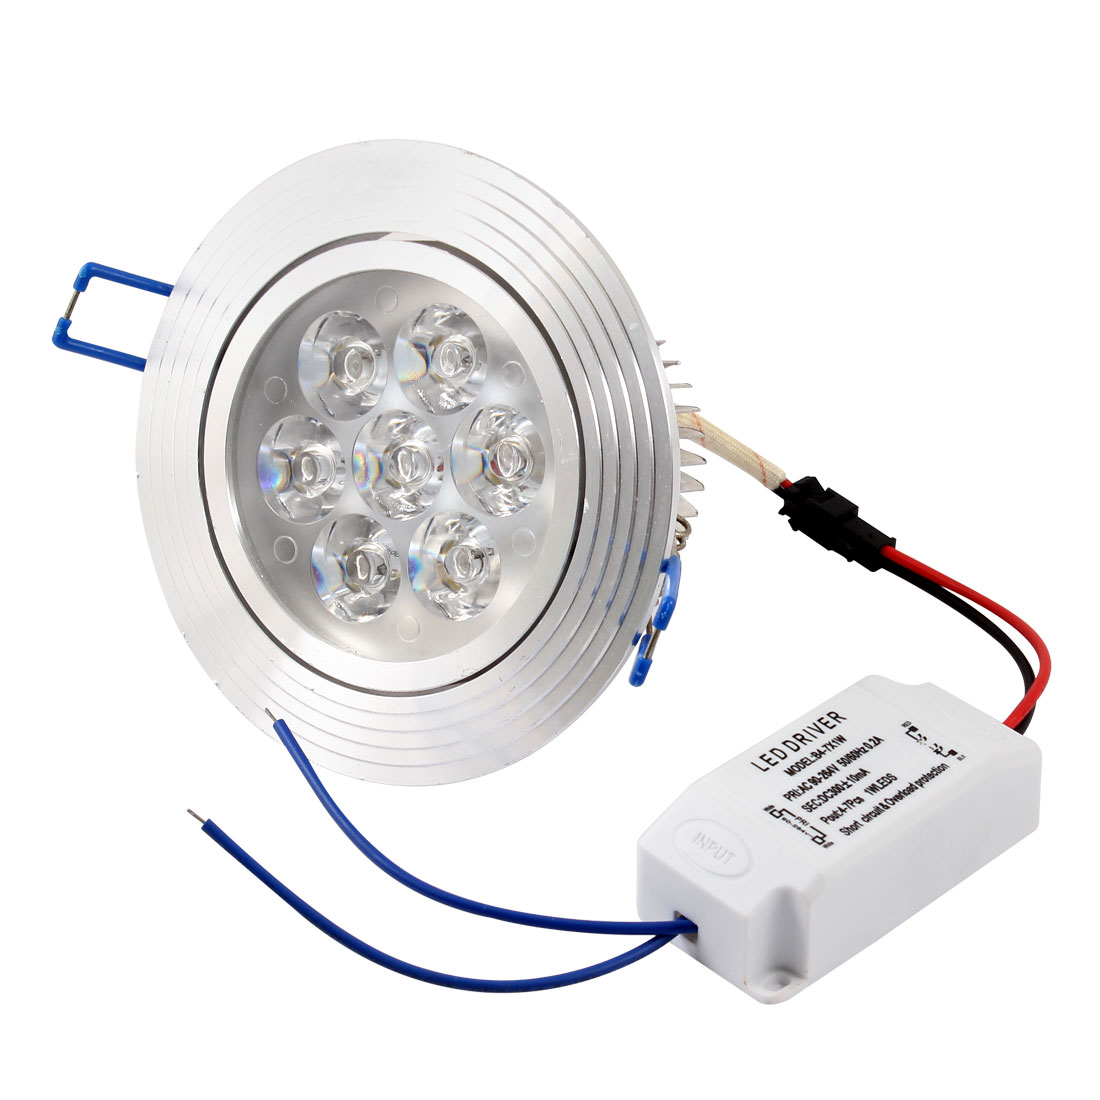 AC90V-264V 7W Warm White Ceiling Downlight Recessed Spot Lamp Bulb + LED Driver